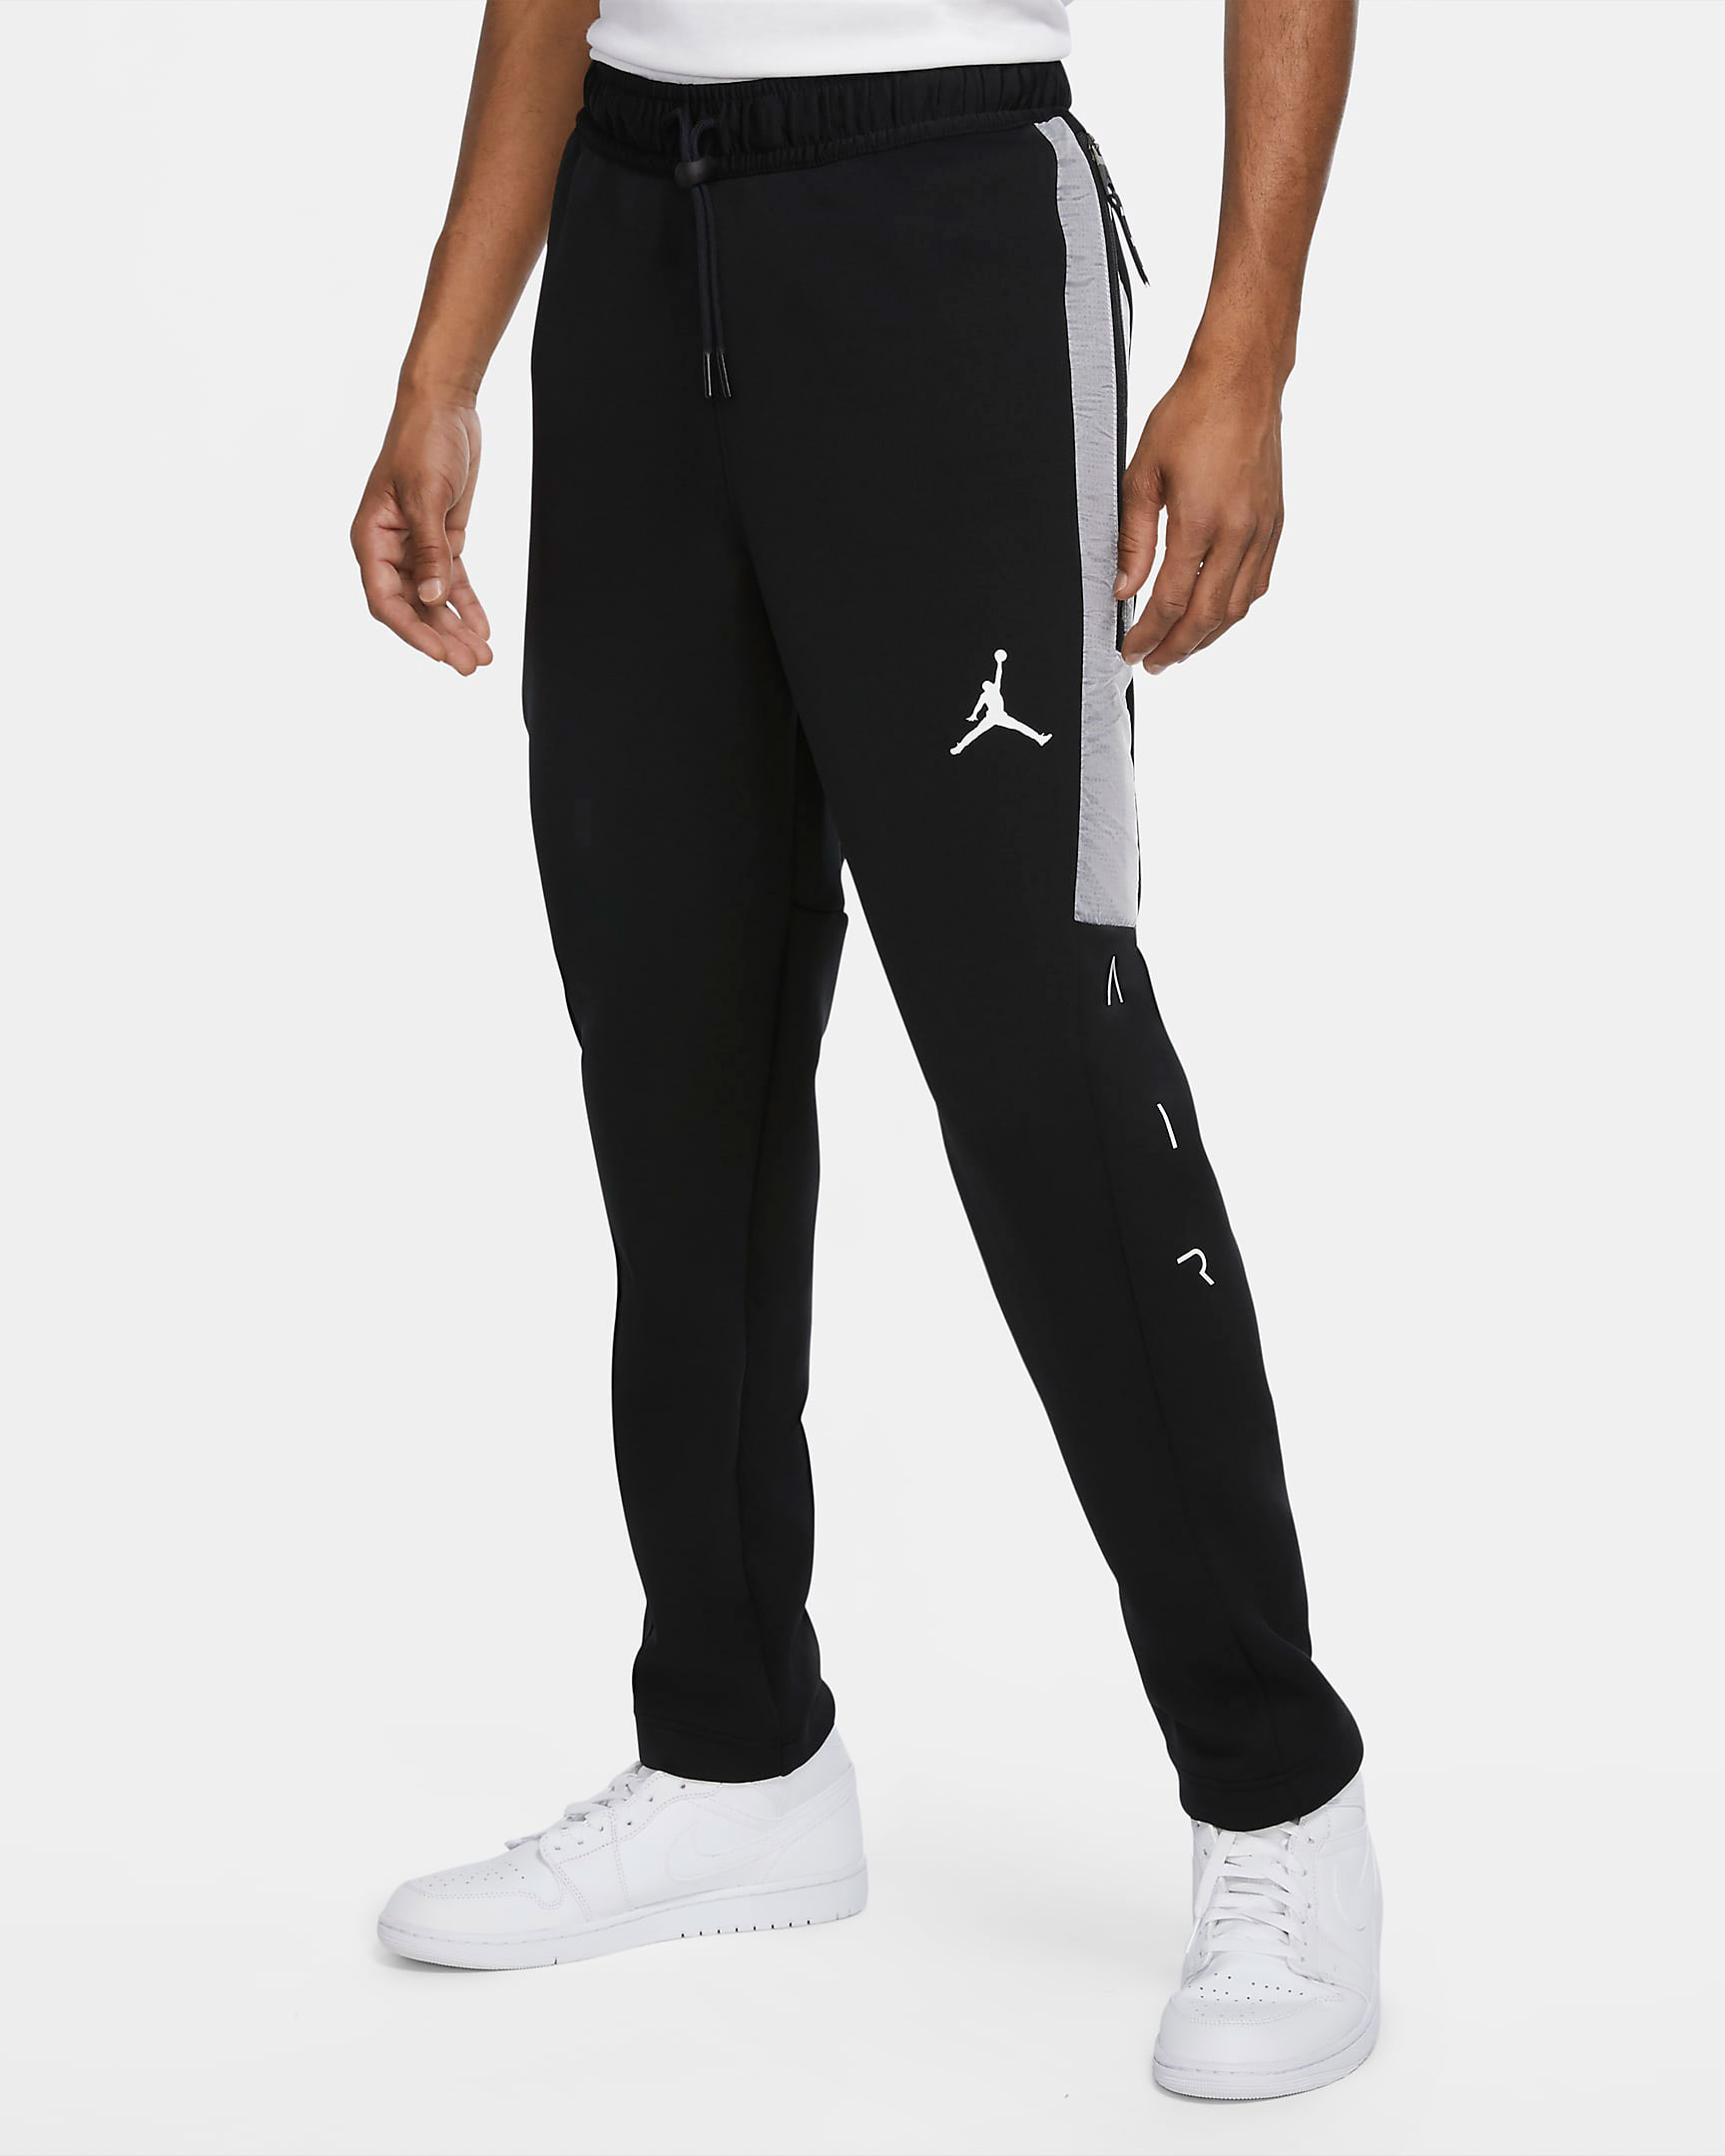 air-jordan-11-jubilee-black-white-jordan-pants-1